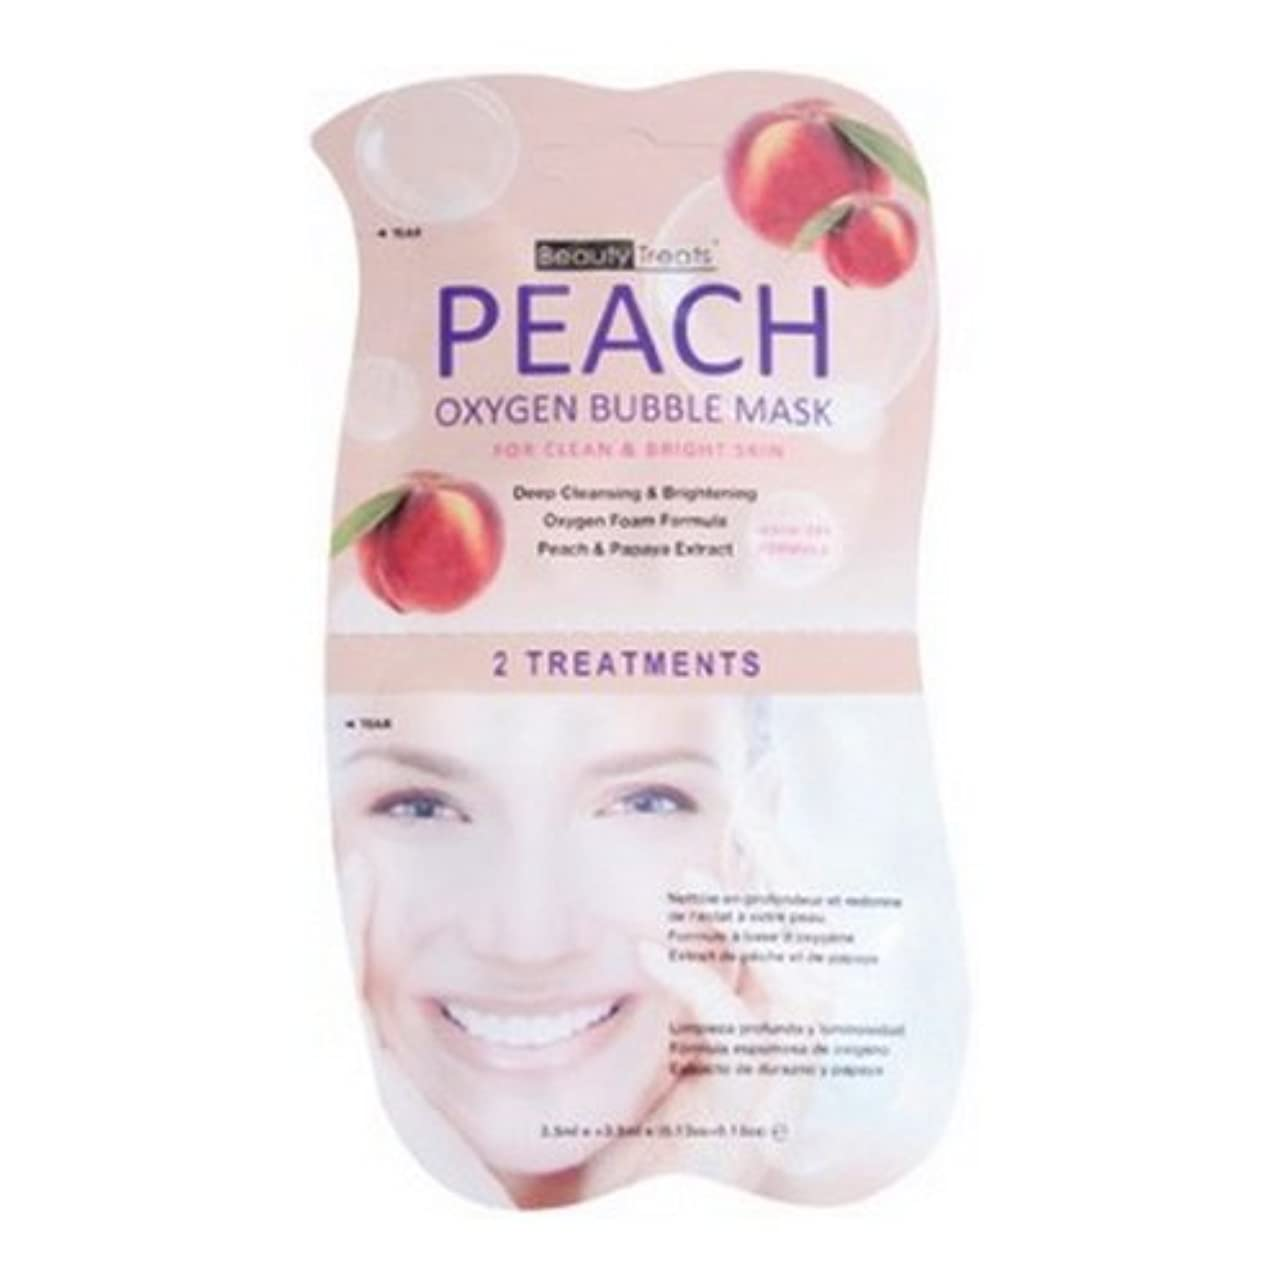 哲学博士プレミア後方(3 Pack) BEAUTY TREATS Peach Oxygen Bubble Mask - Peach (並行輸入品)